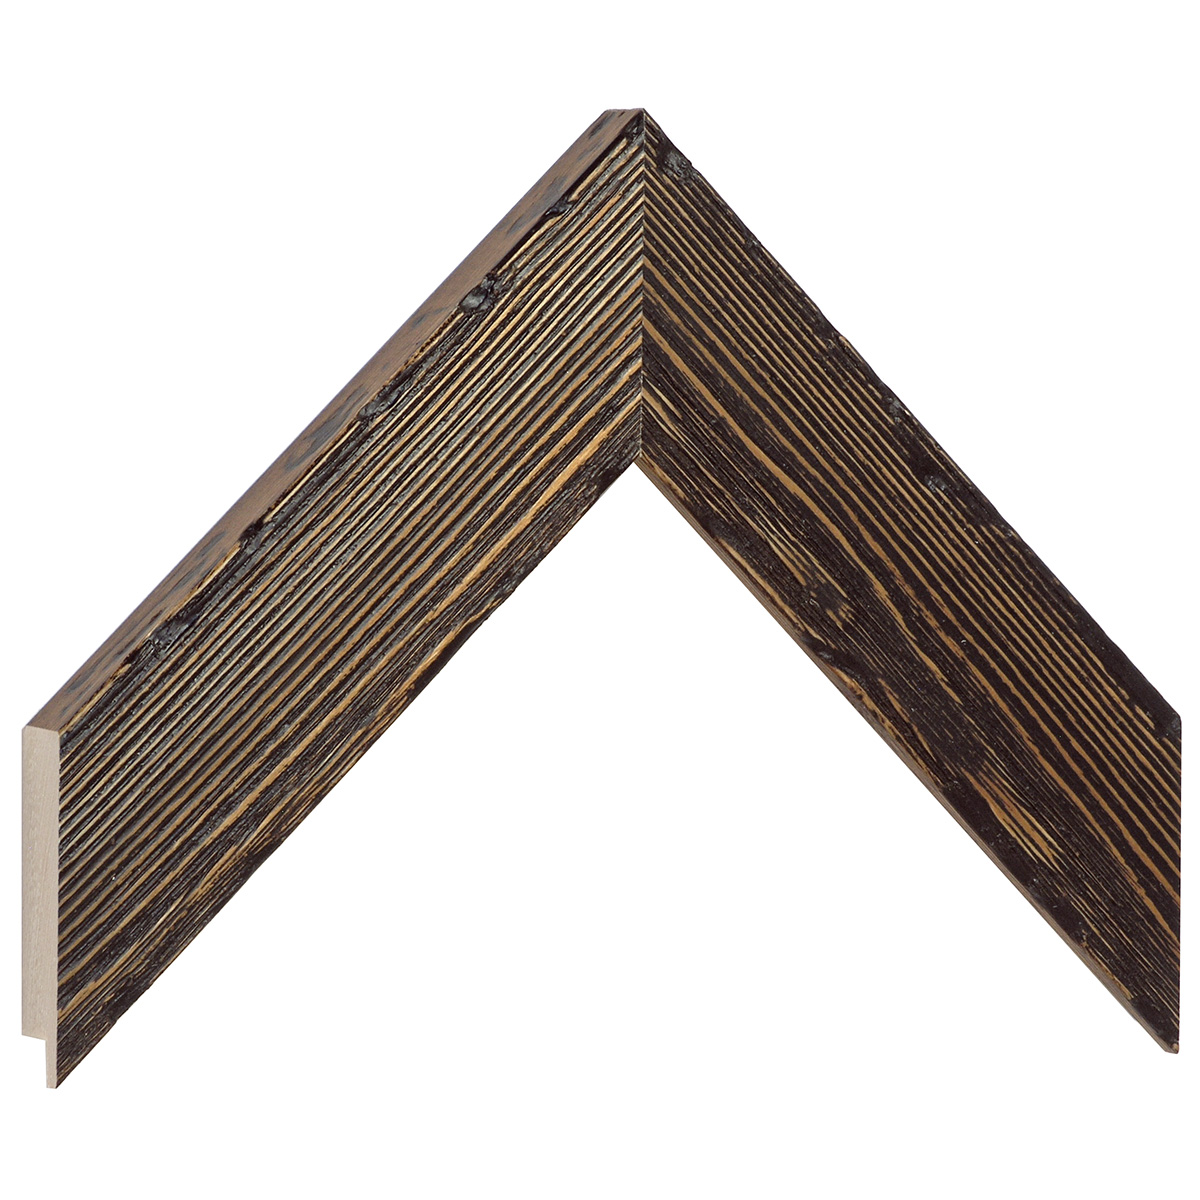 Moulding pine Width 42mm Height 19 - rustic finish, wenge